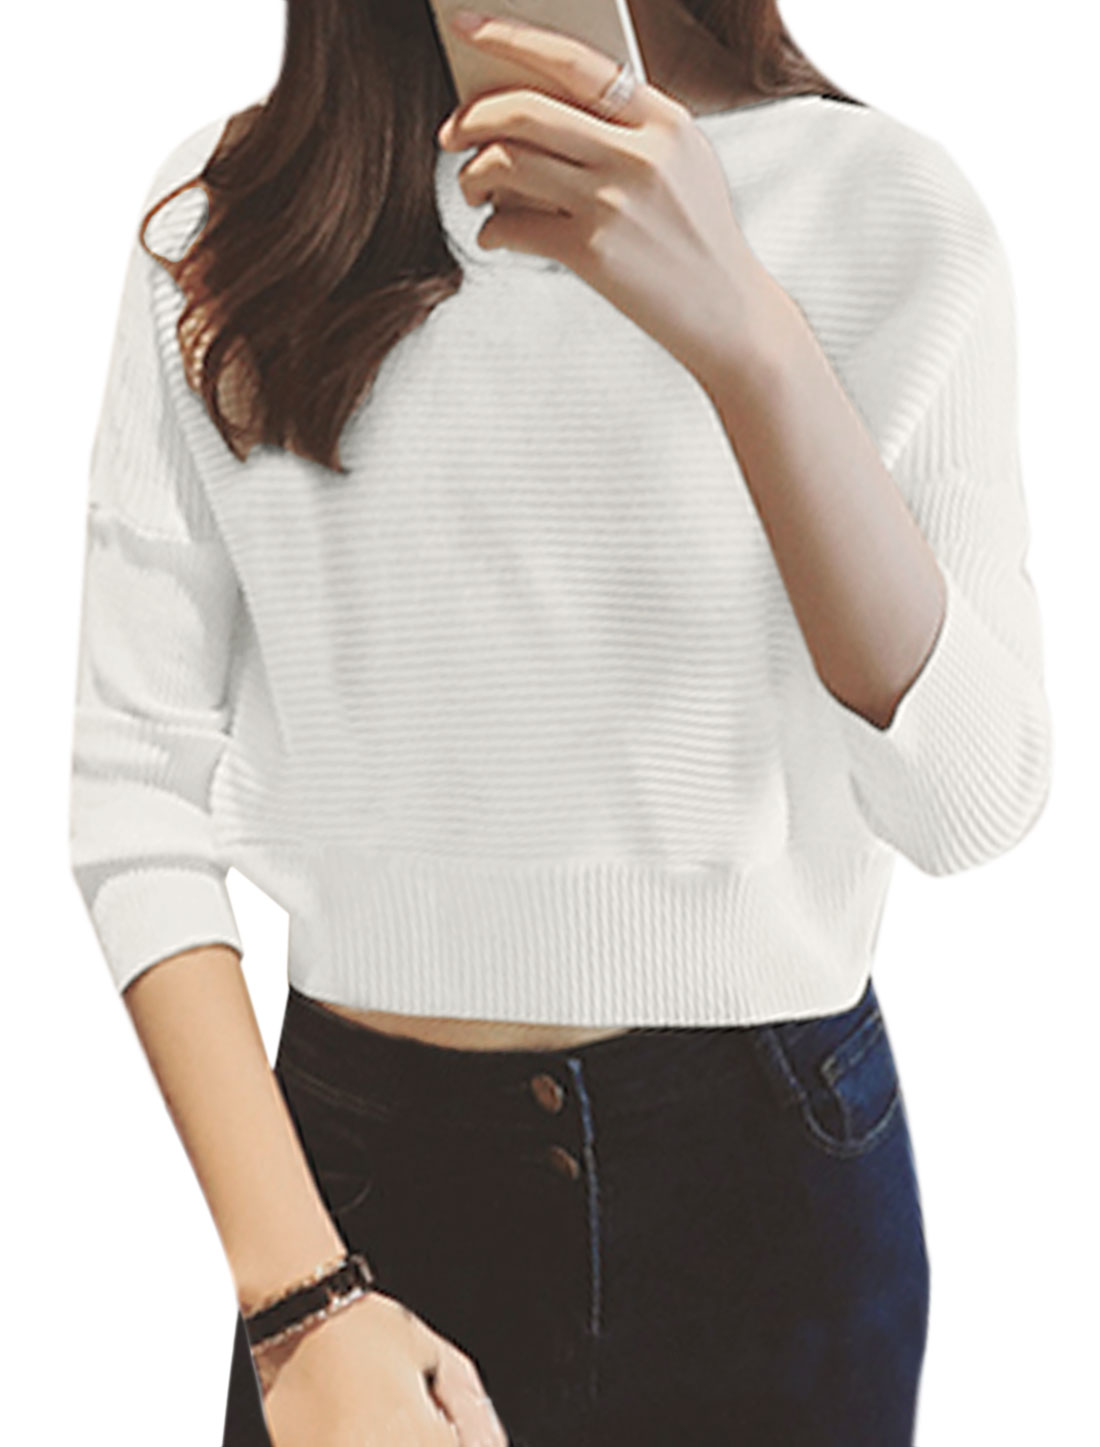 Women Dolman Sleeves Pullover Textured Crop Knit Shirt White XS